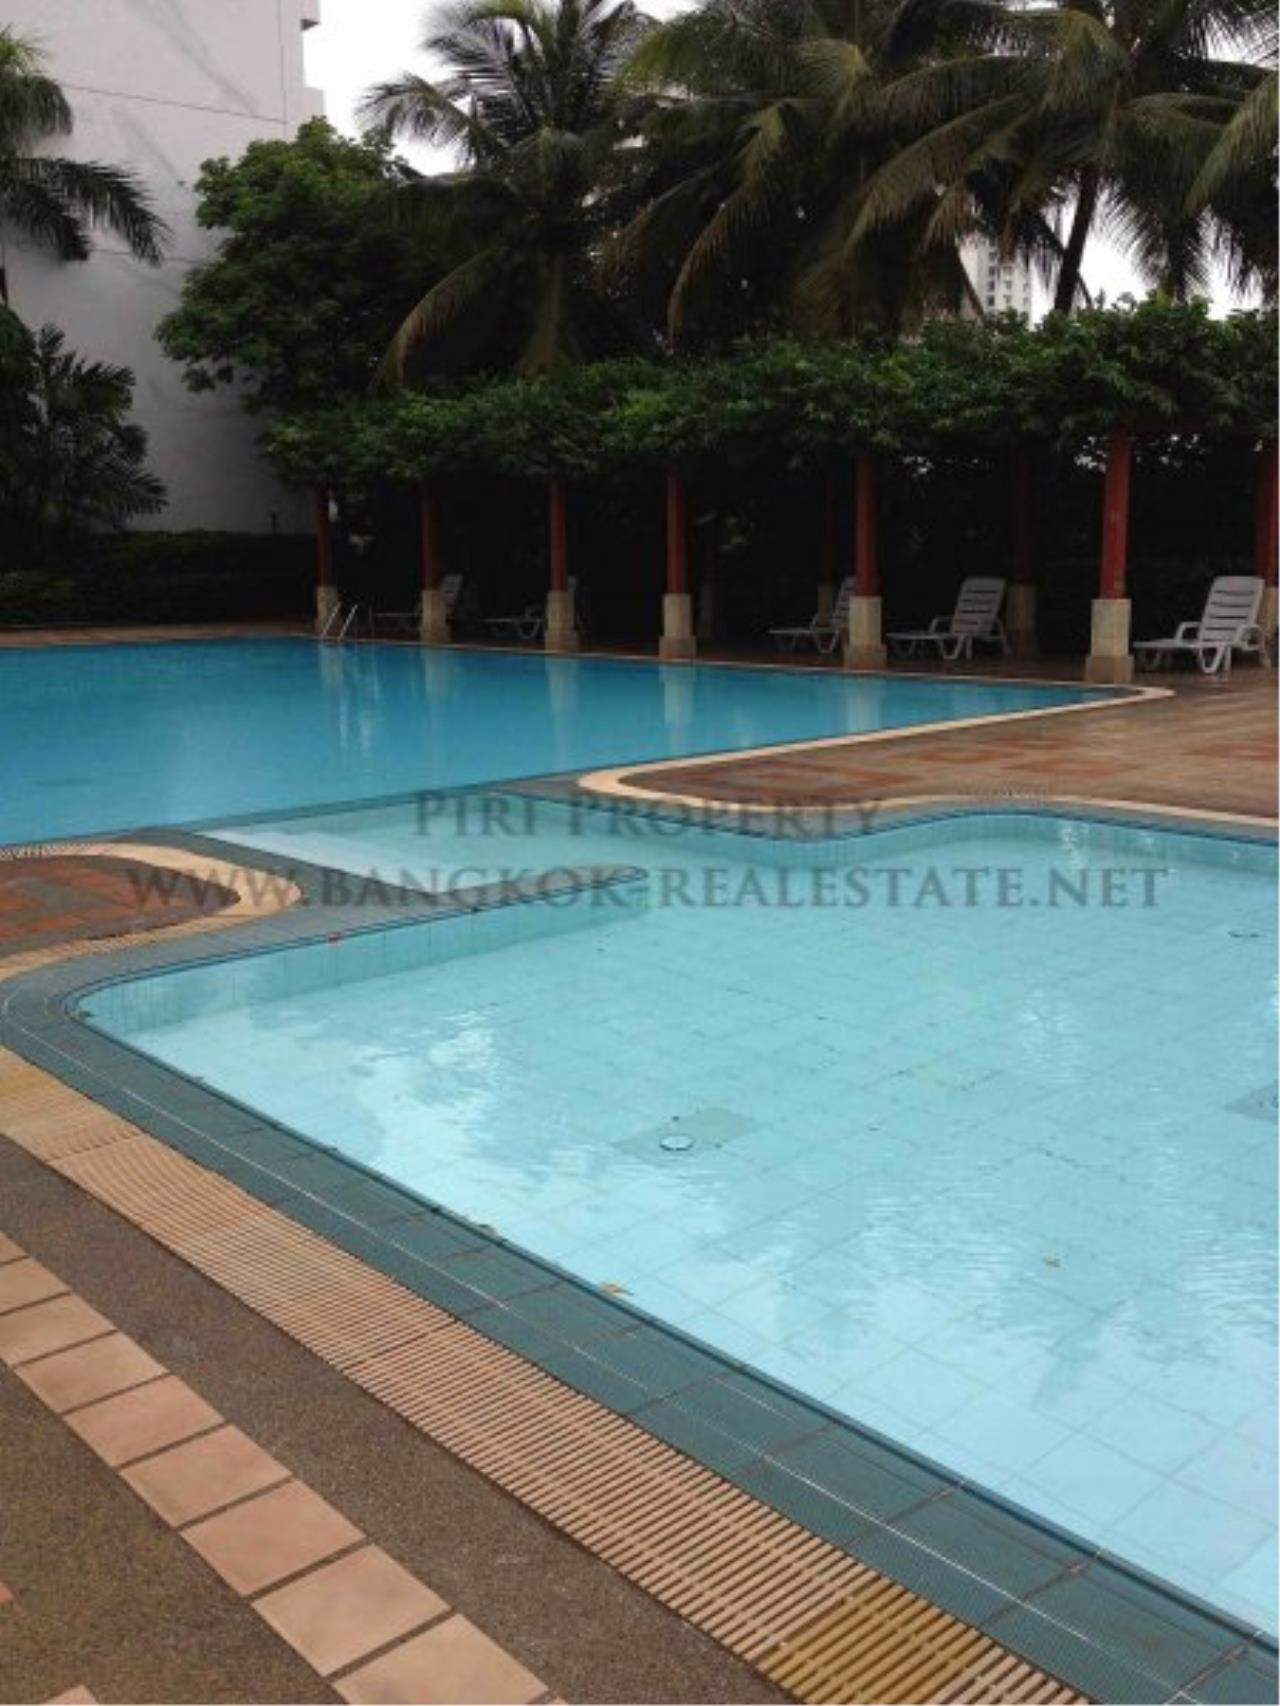 Piri Property Agency's DS Tower 2 - Renovated and Condo for Sale - 3BR 20